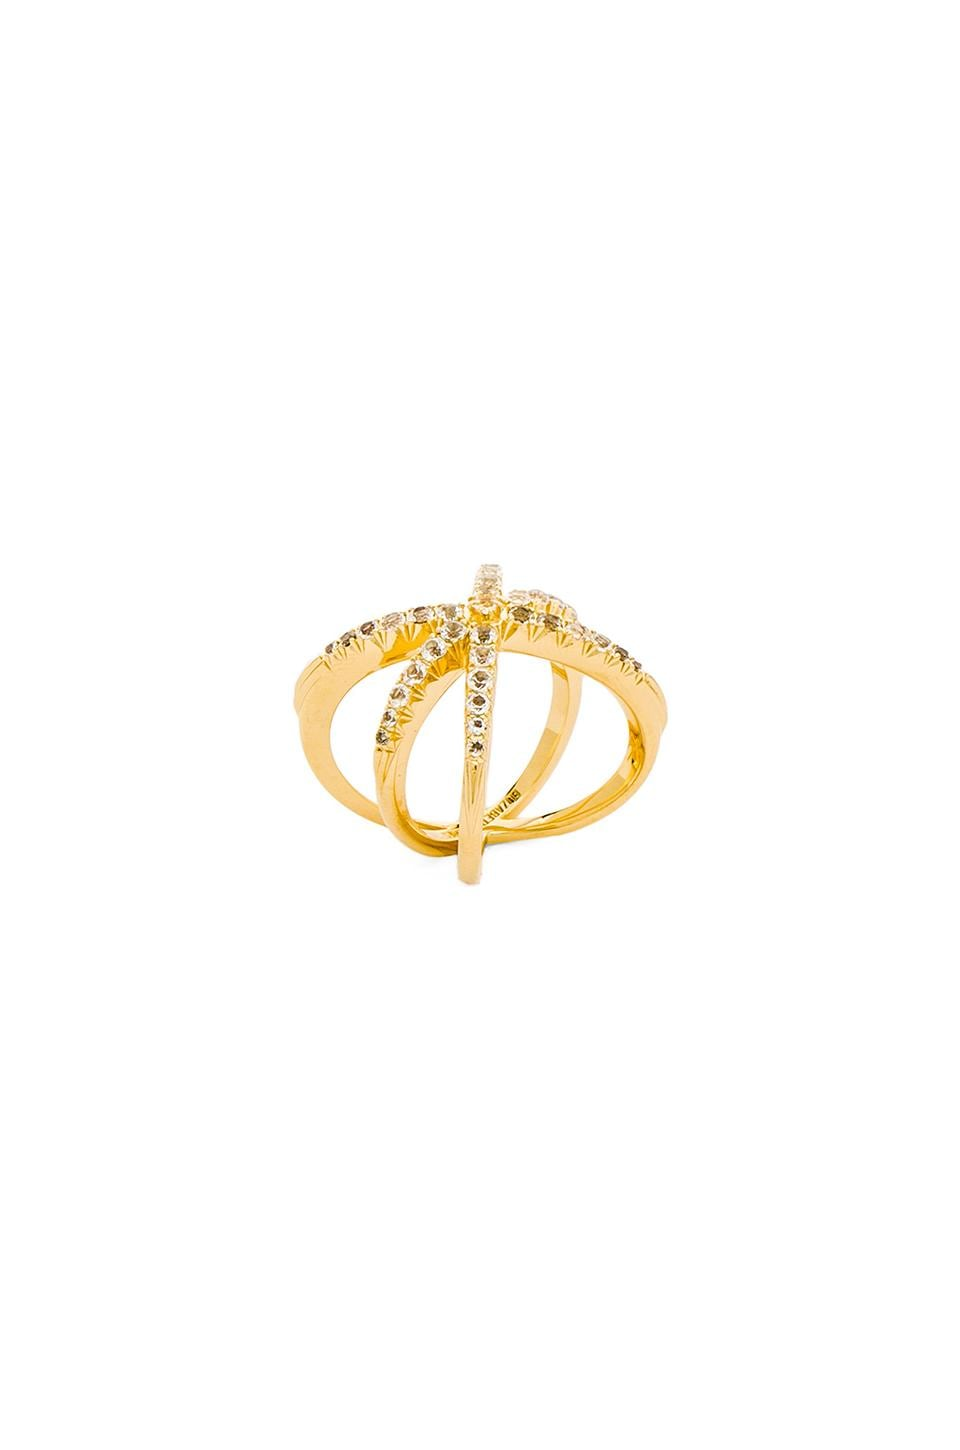 Elizabeth and James Vida Ring in Yellow Gold